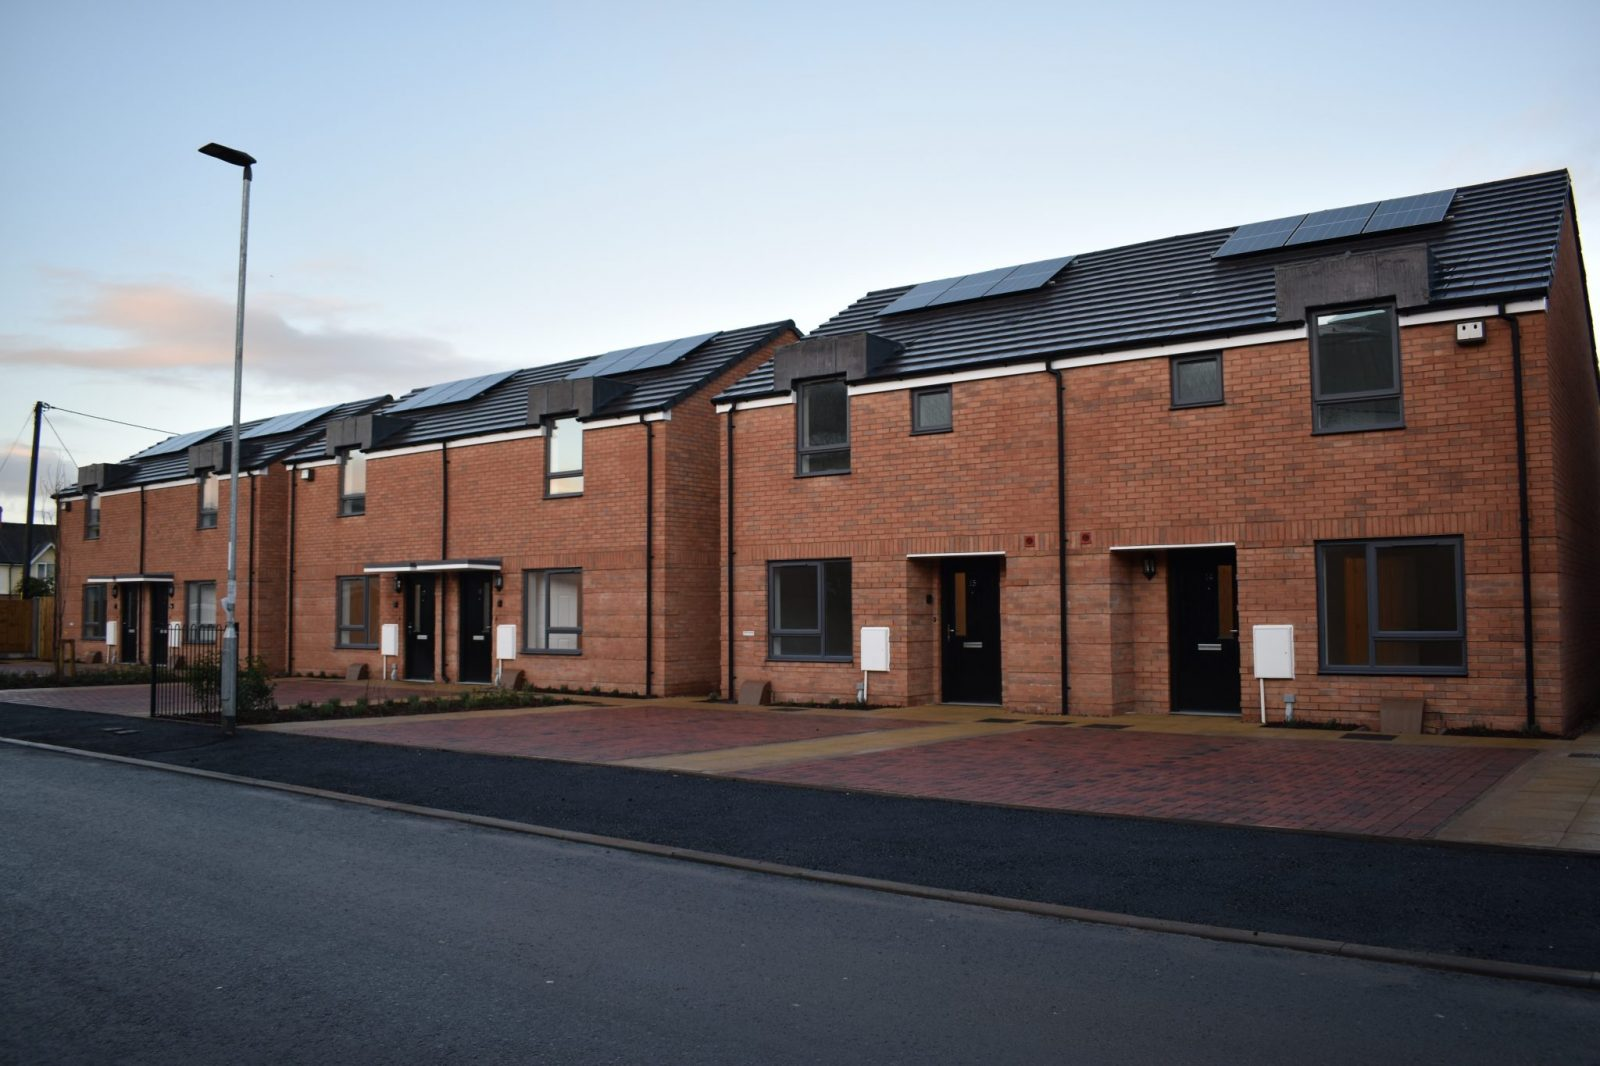 Alabare's self build homes for veterans